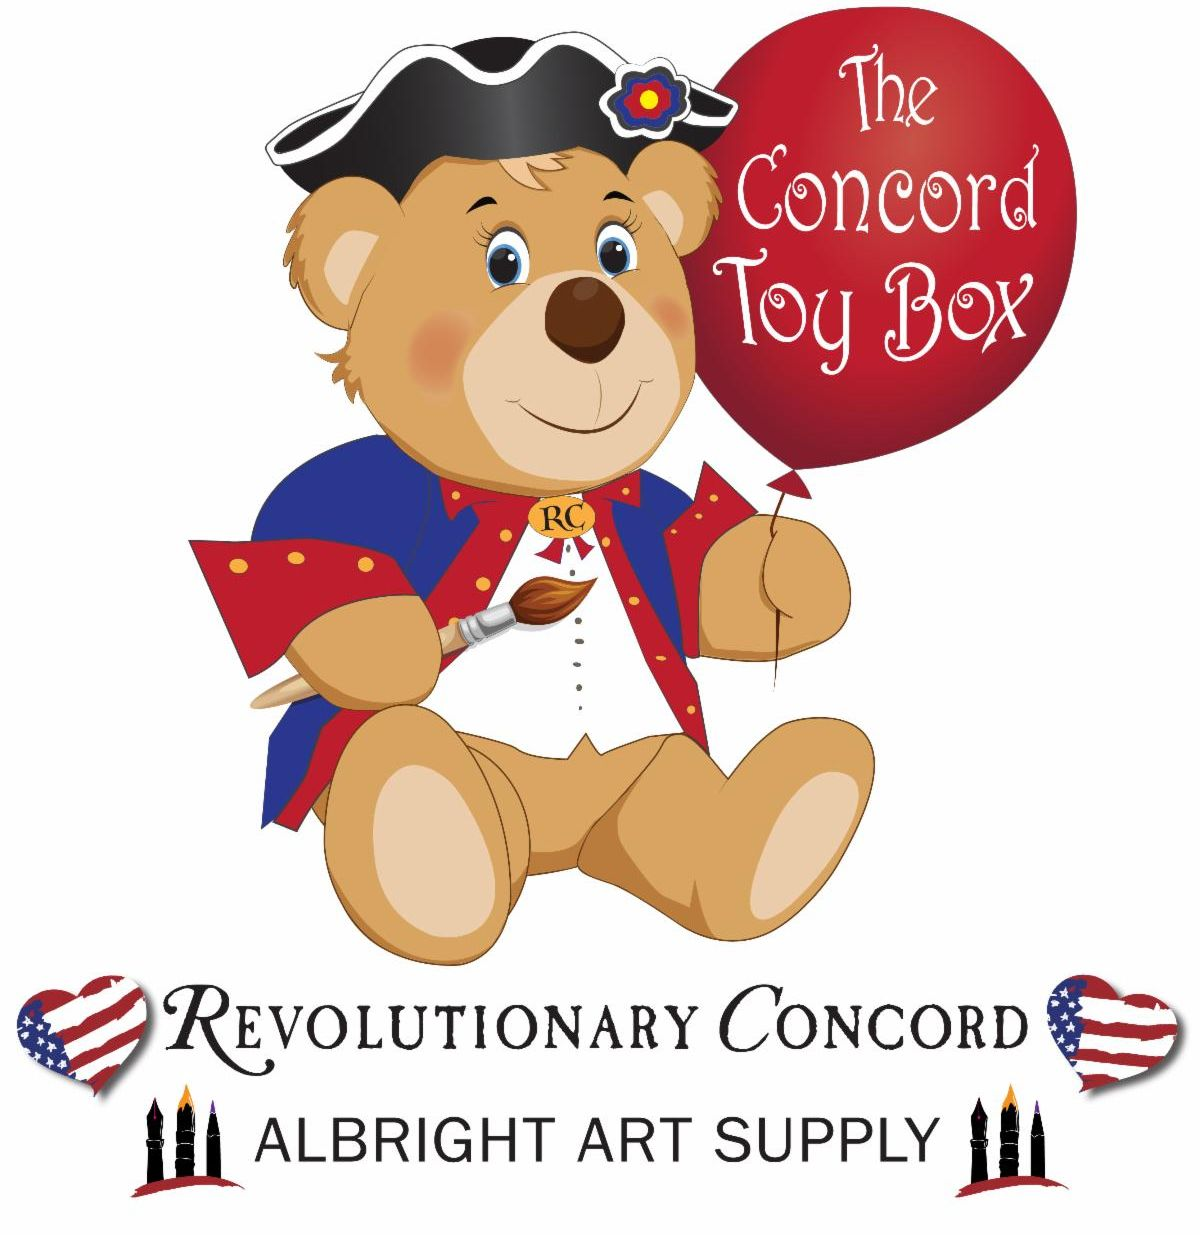 THE CONCORD TOY BOX